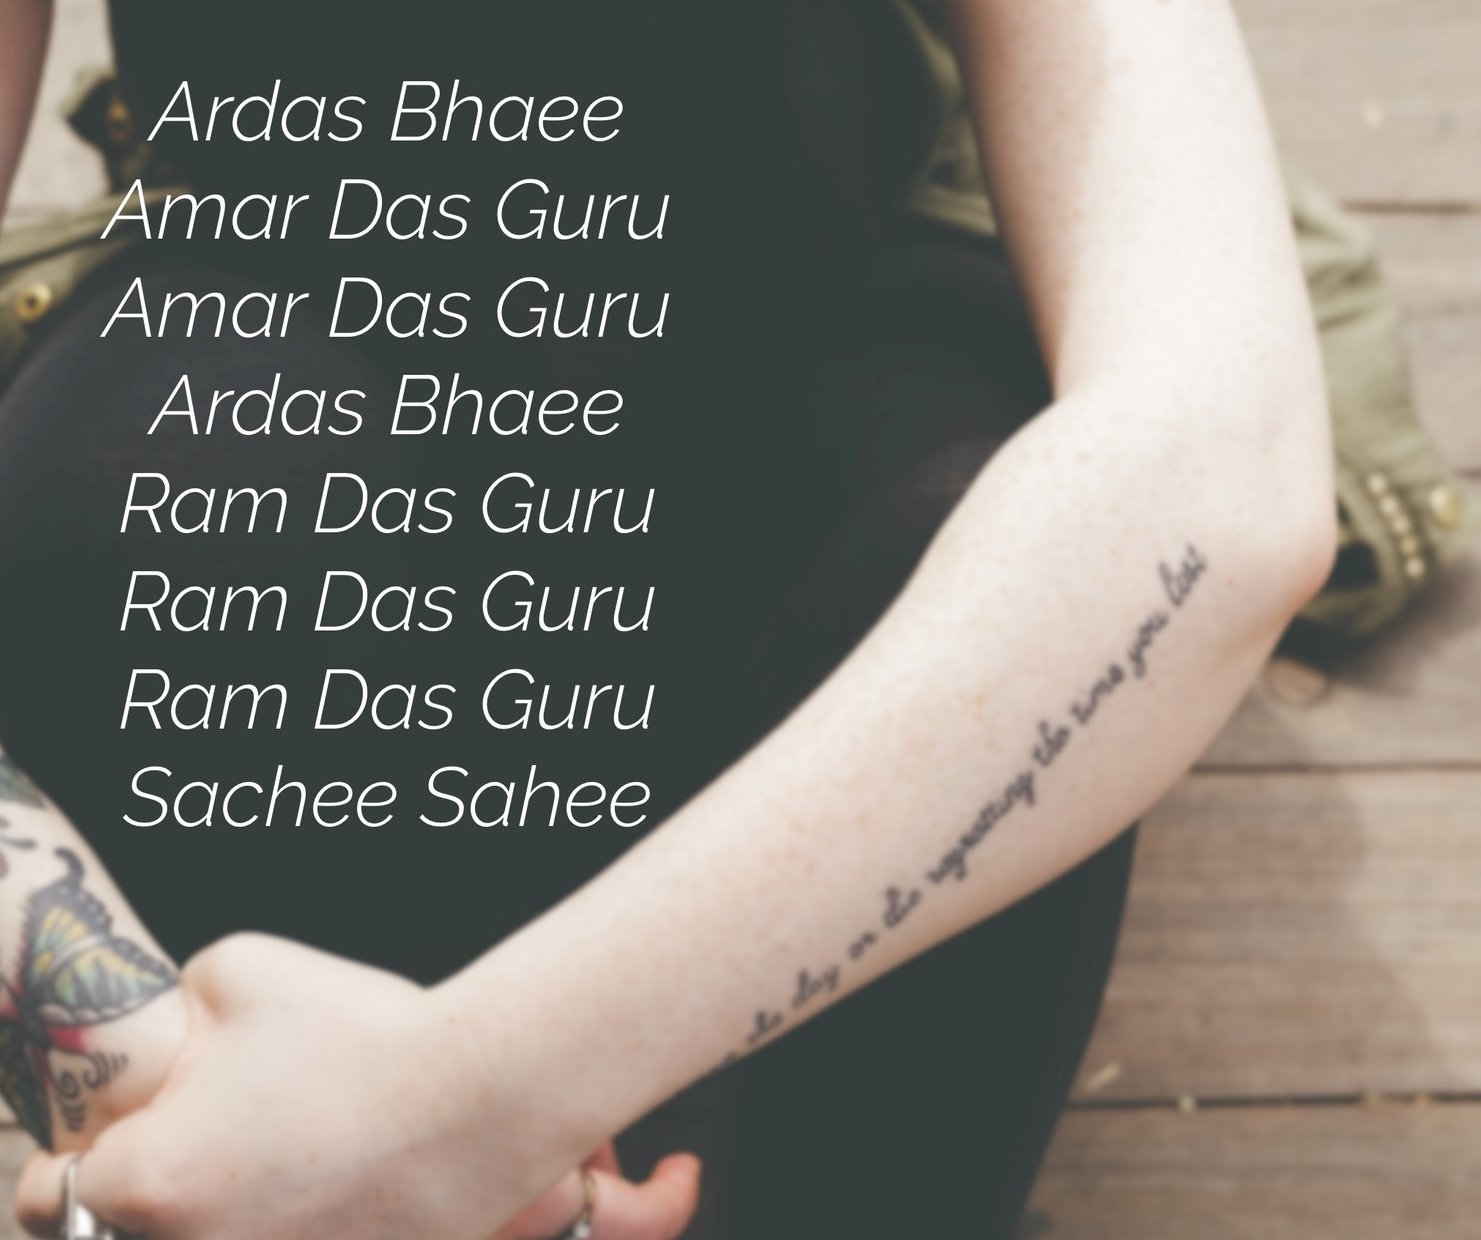 Ardas Bhaee - Guru Amar Das is the energy of grace and hope, when you feel there is no hope. Guru Ram Das is the energy of miracles, healing and blessings.